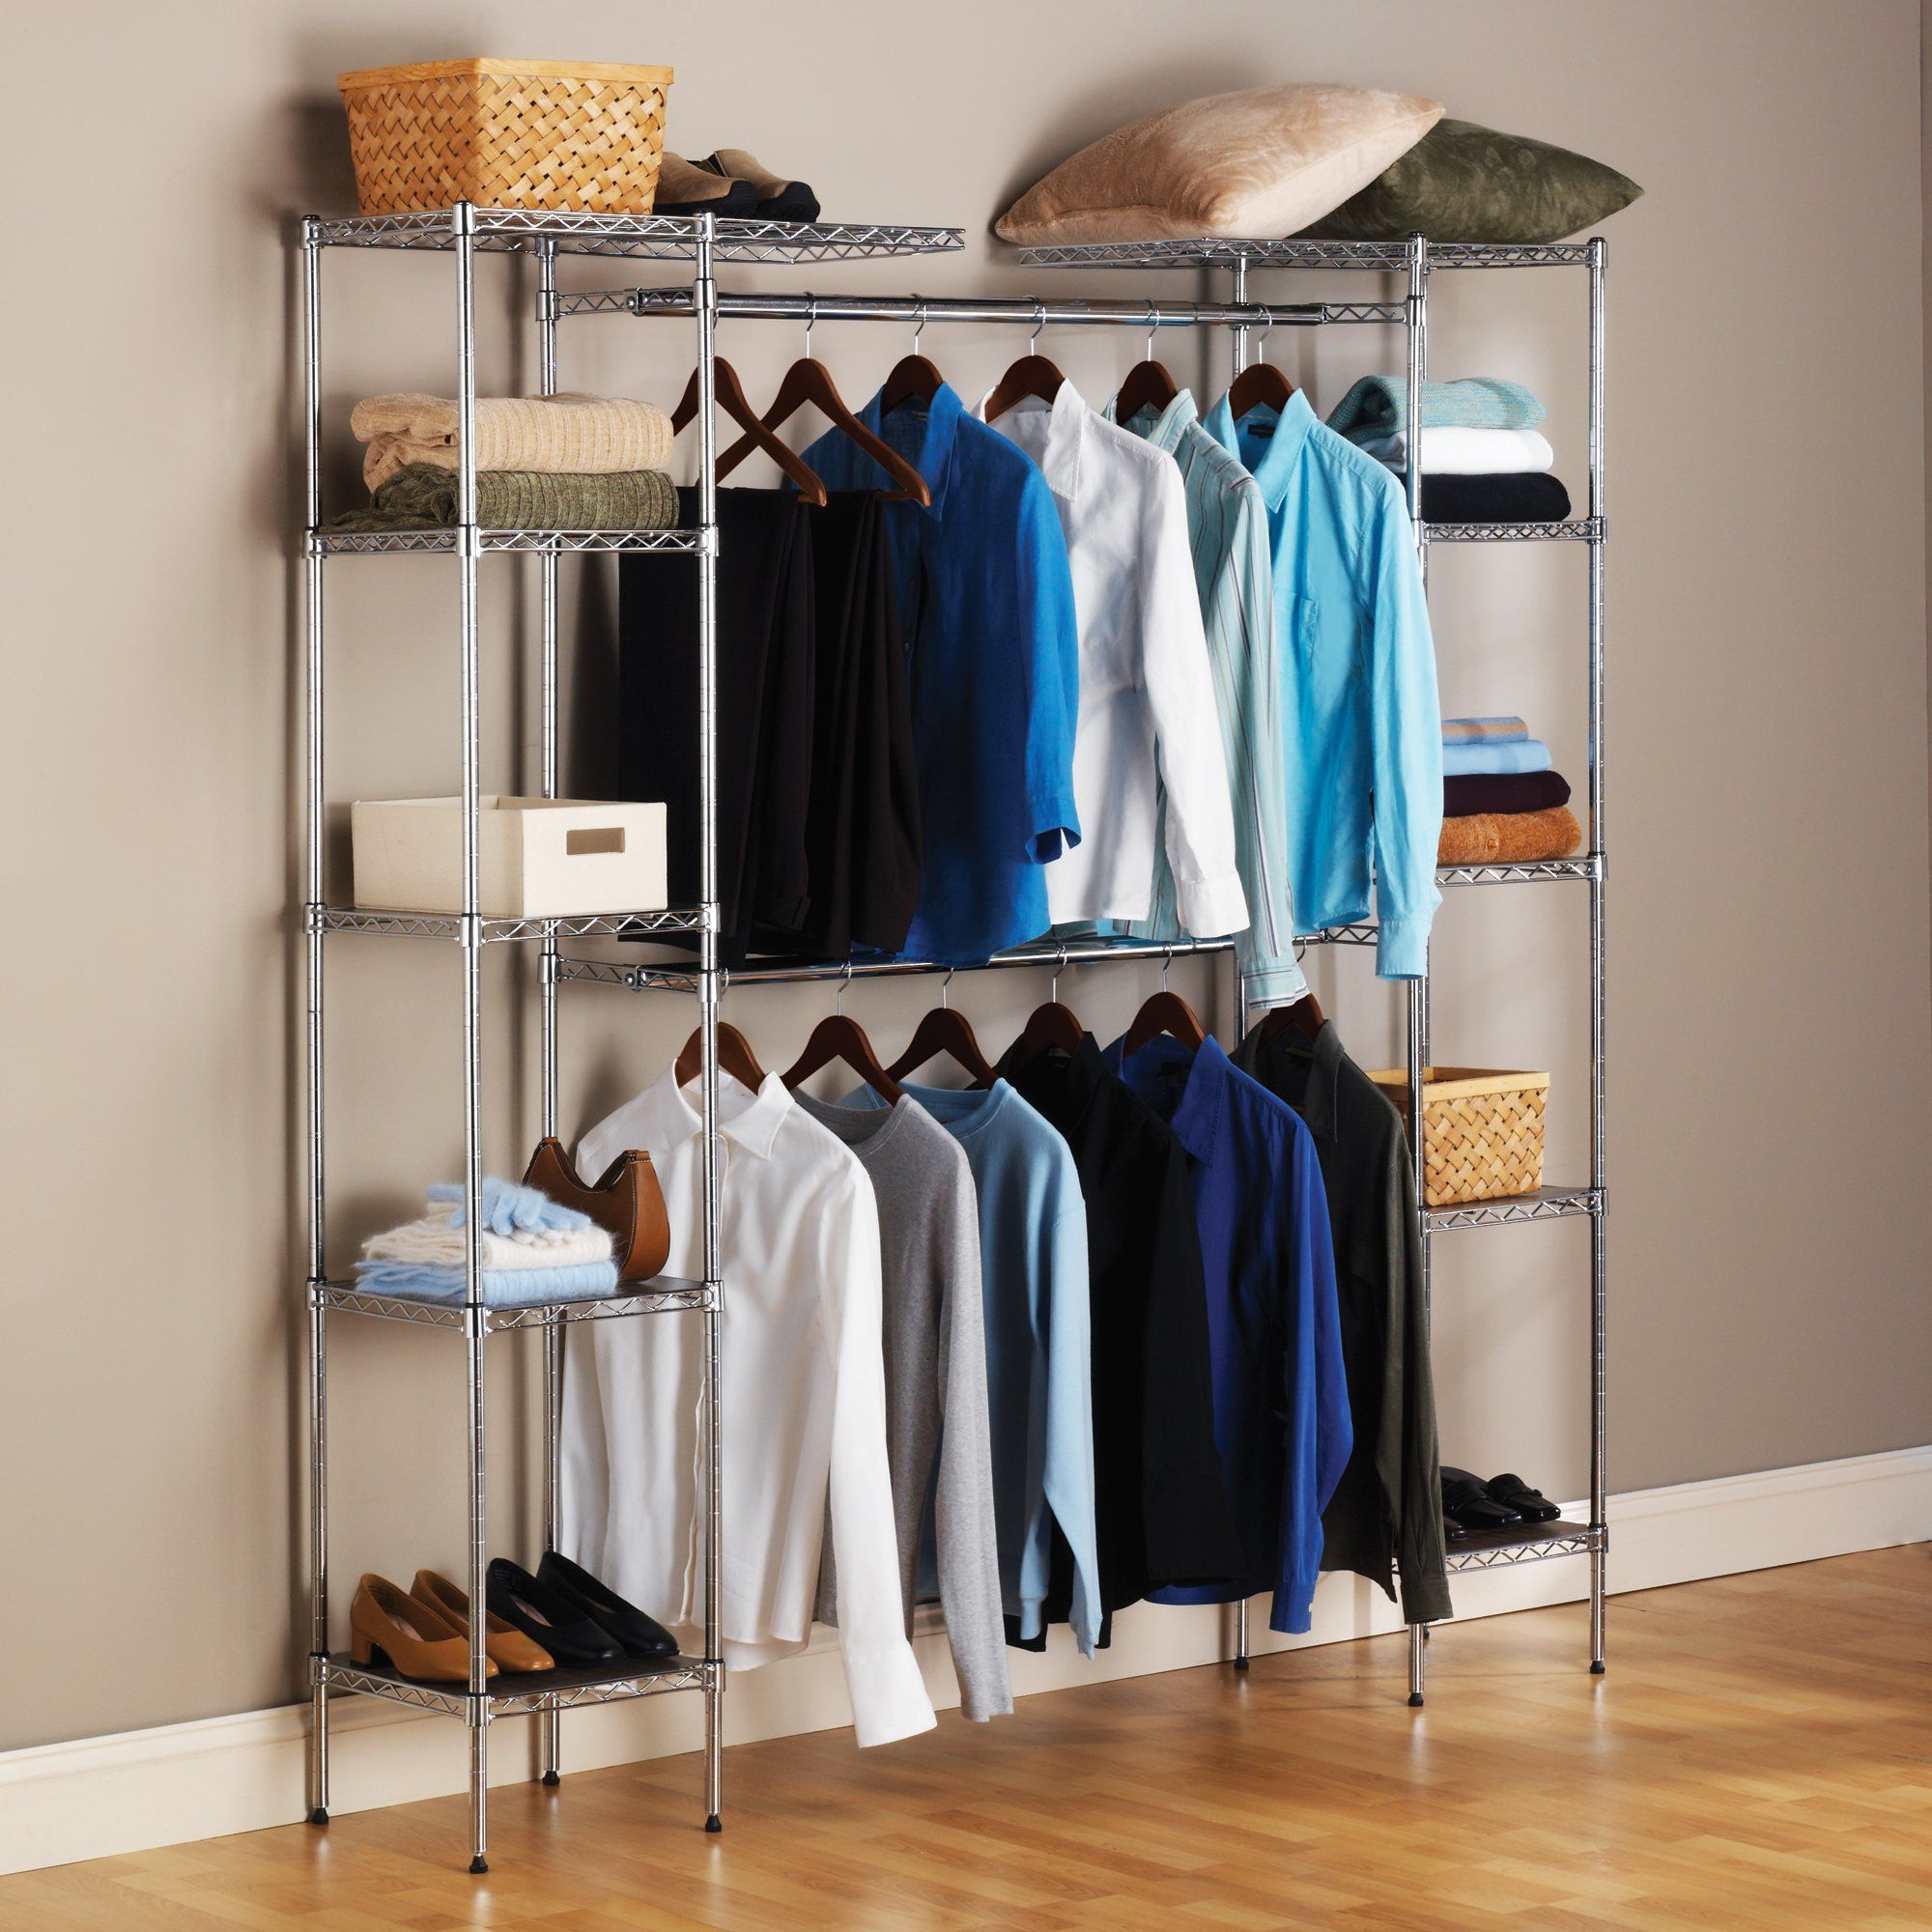 size standing system walmart conjunction wood as systems of lowes freestanding floor in full free well closet with together ikea